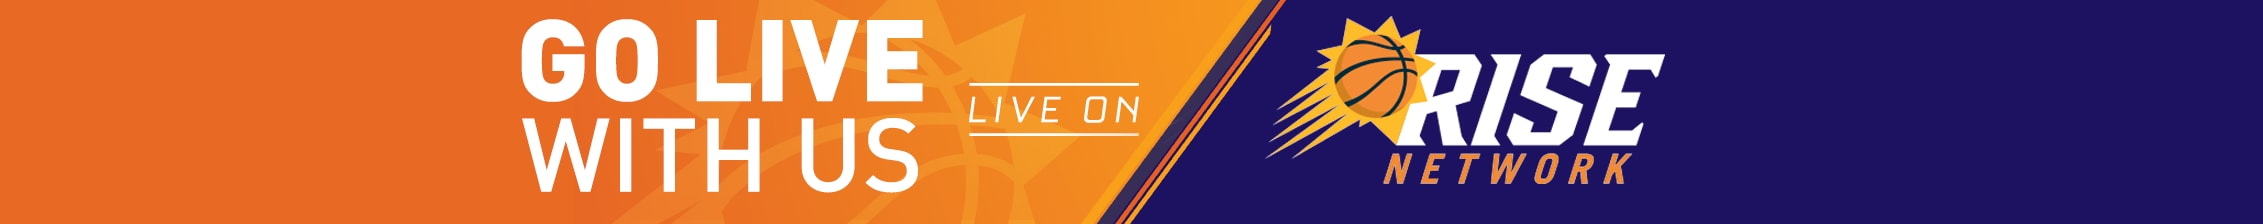 Suns Now LIVE ON Rise Suns Digital Network